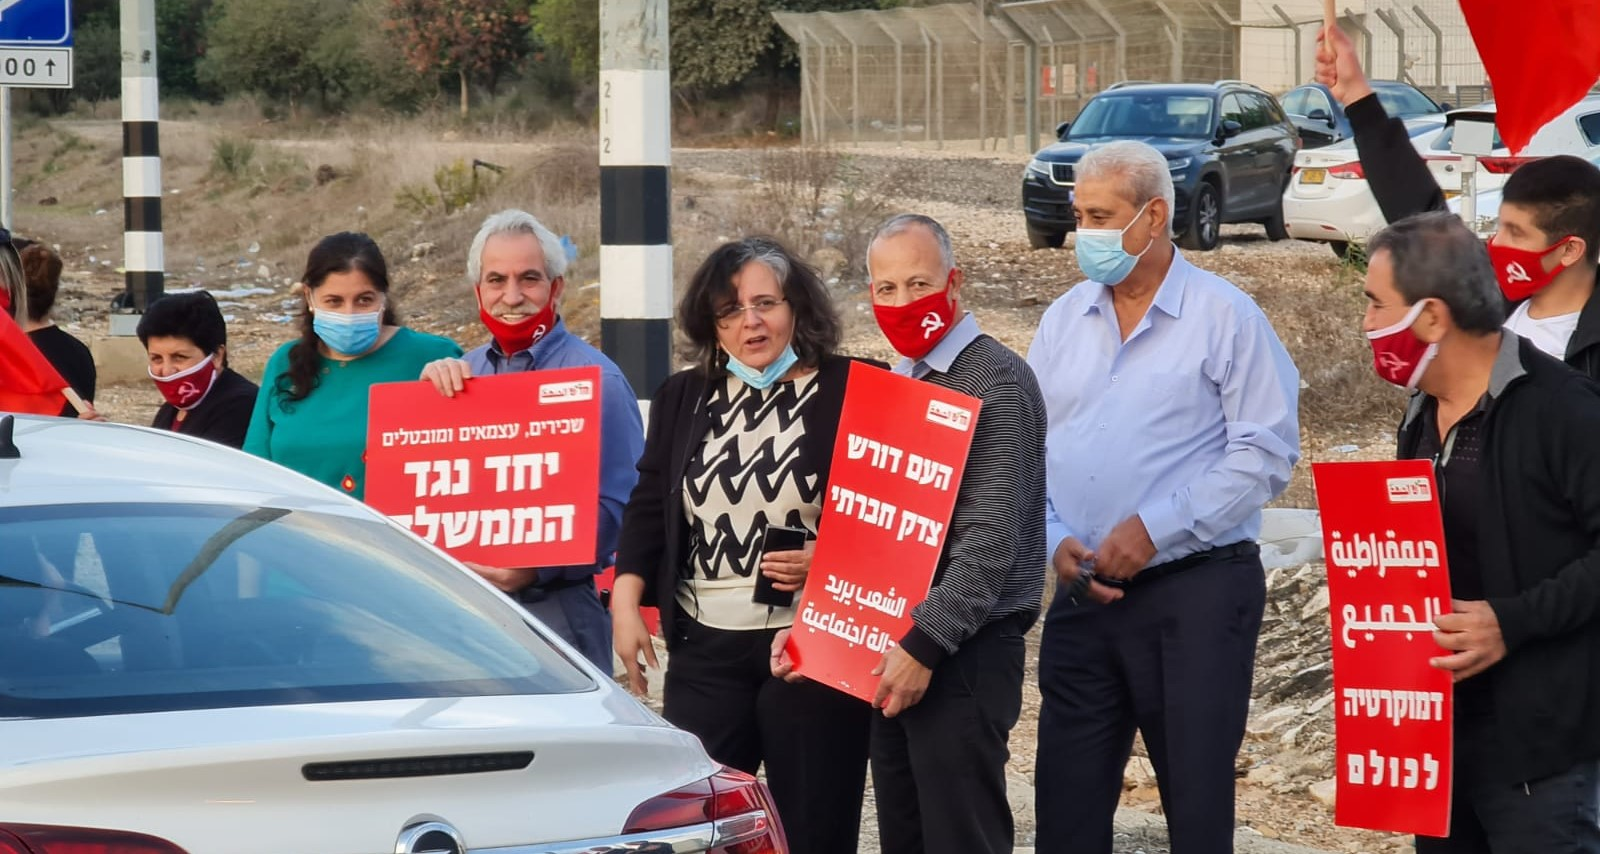 "Members of Hadash and the Communist Party of Israel demonstrate at the Acre junction against Netanyahu's far-right government , Saturday, November 7. Among the demonstrators: Joint List MK Aida Touma-Sliman (center) and next to her wearing the red ""hammer and sickle"" mask and holding the sign ""The people demand social justice,"" former Hadash MK Dr. Abdullah Abu Maaruf; next to him in the light blue shirt and mask, MK Jaber Asaqla. Other Hadash signs read: ""Employees, Independents and Unemployed – Together against the government"" and ""Democracy for All."""